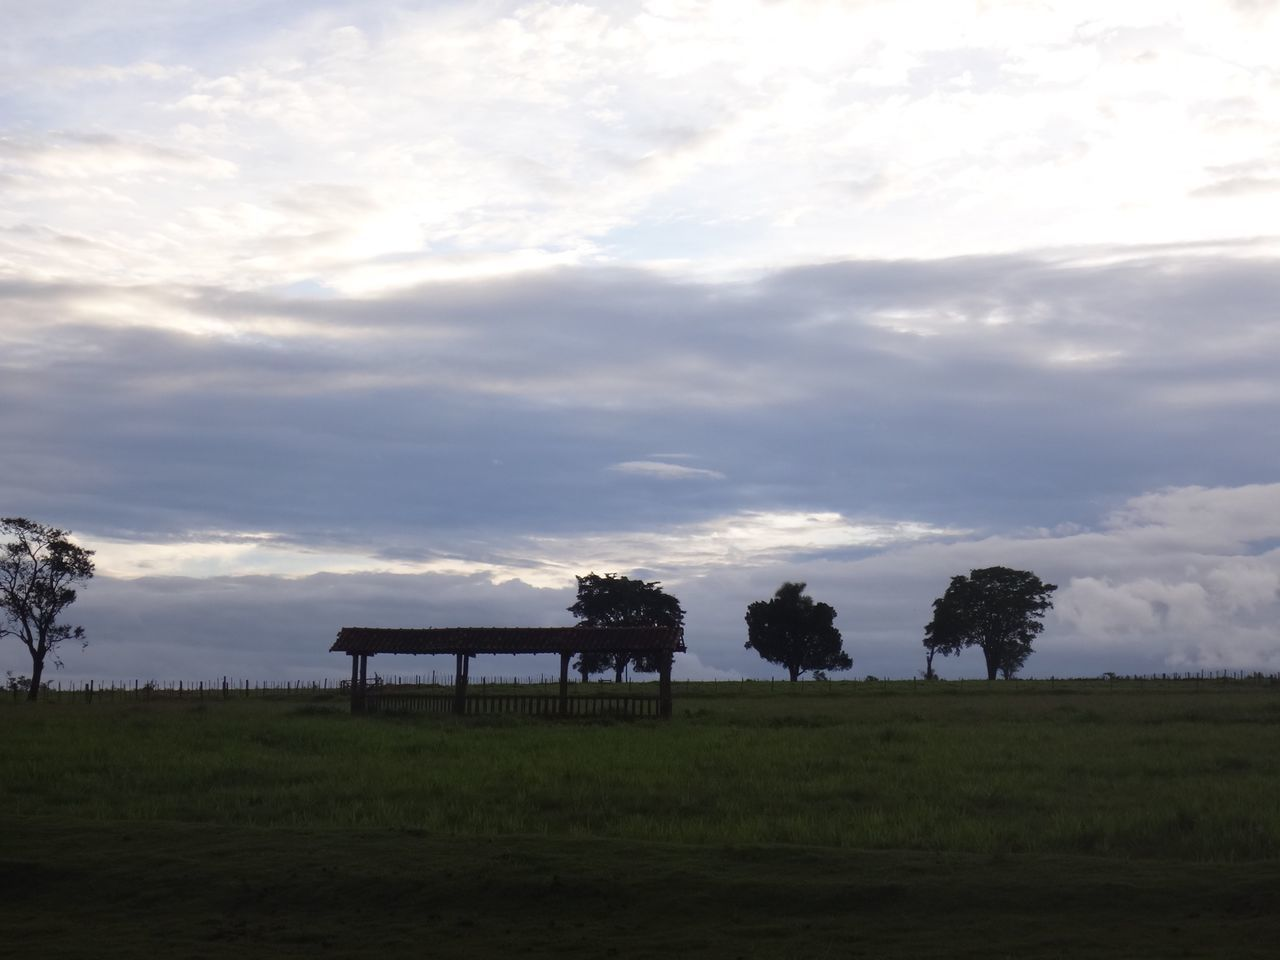 cloud - sky, sky, tree, nature, field, beauty in nature, scenics, tranquility, landscape, tranquil scene, grass, no people, outdoors, day, growth